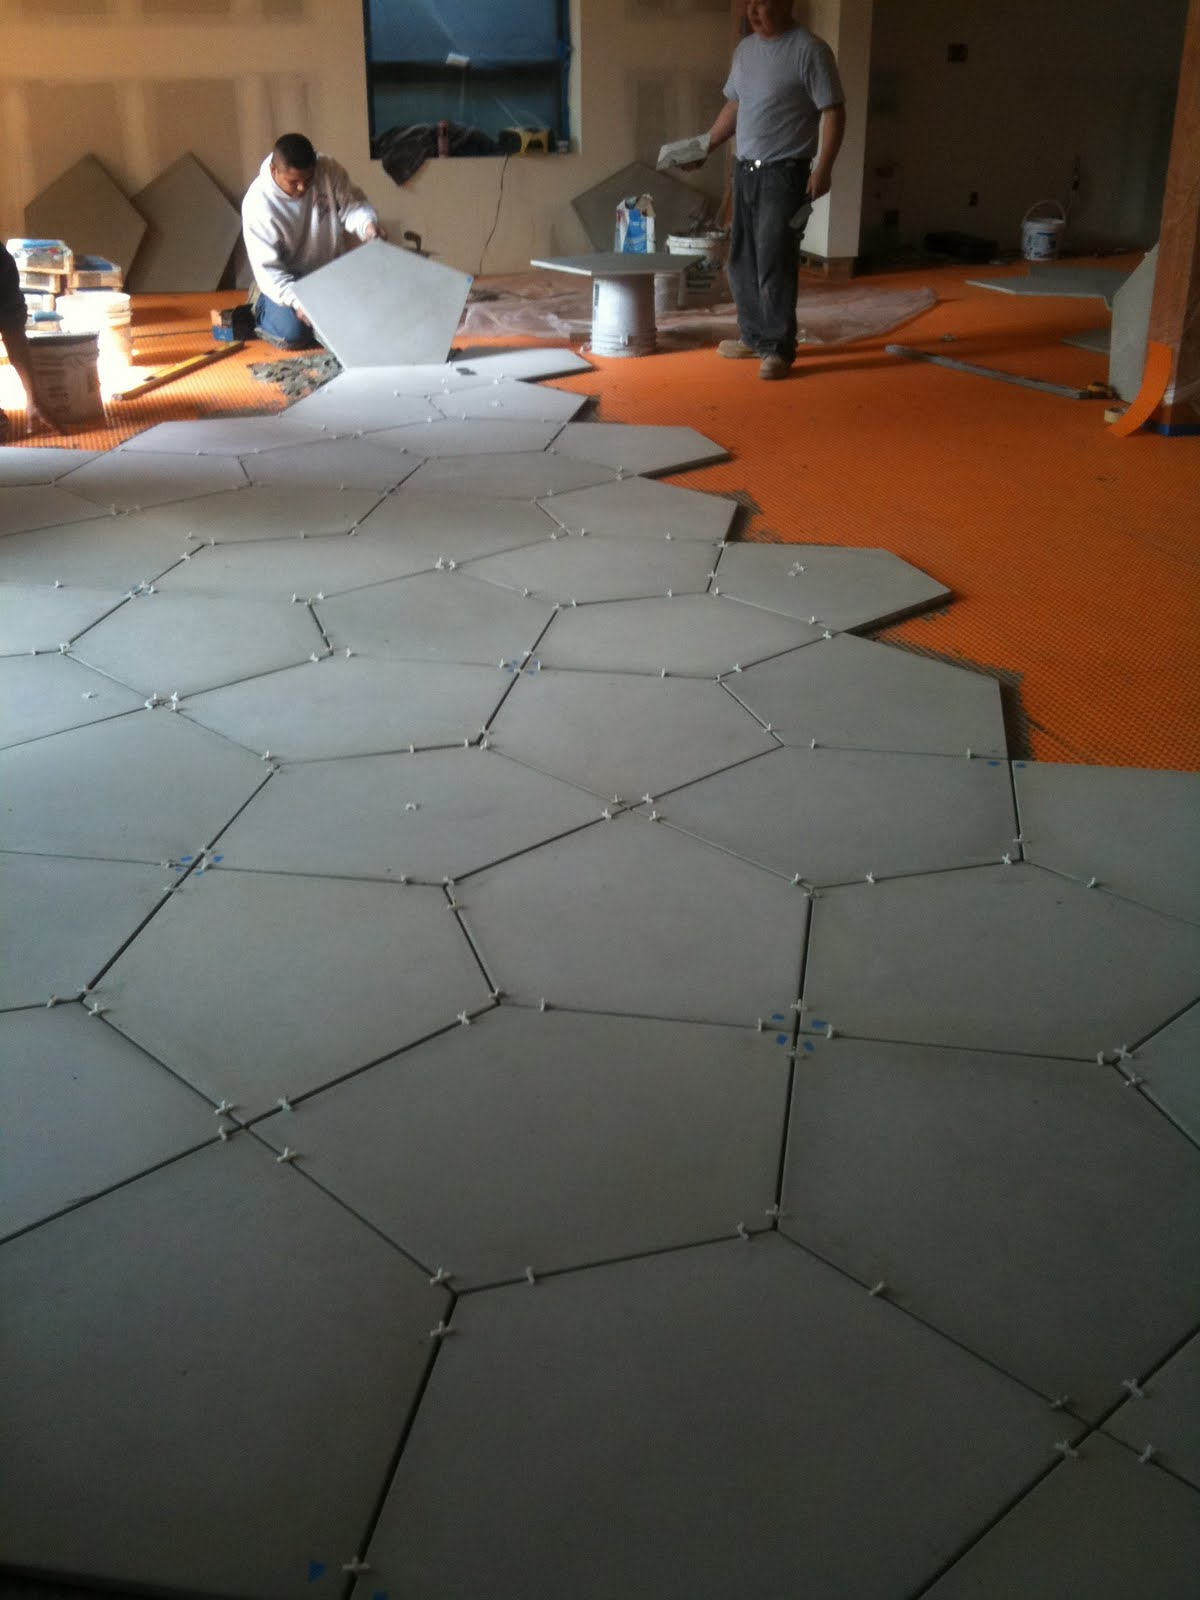 Tiling on a concrete floor